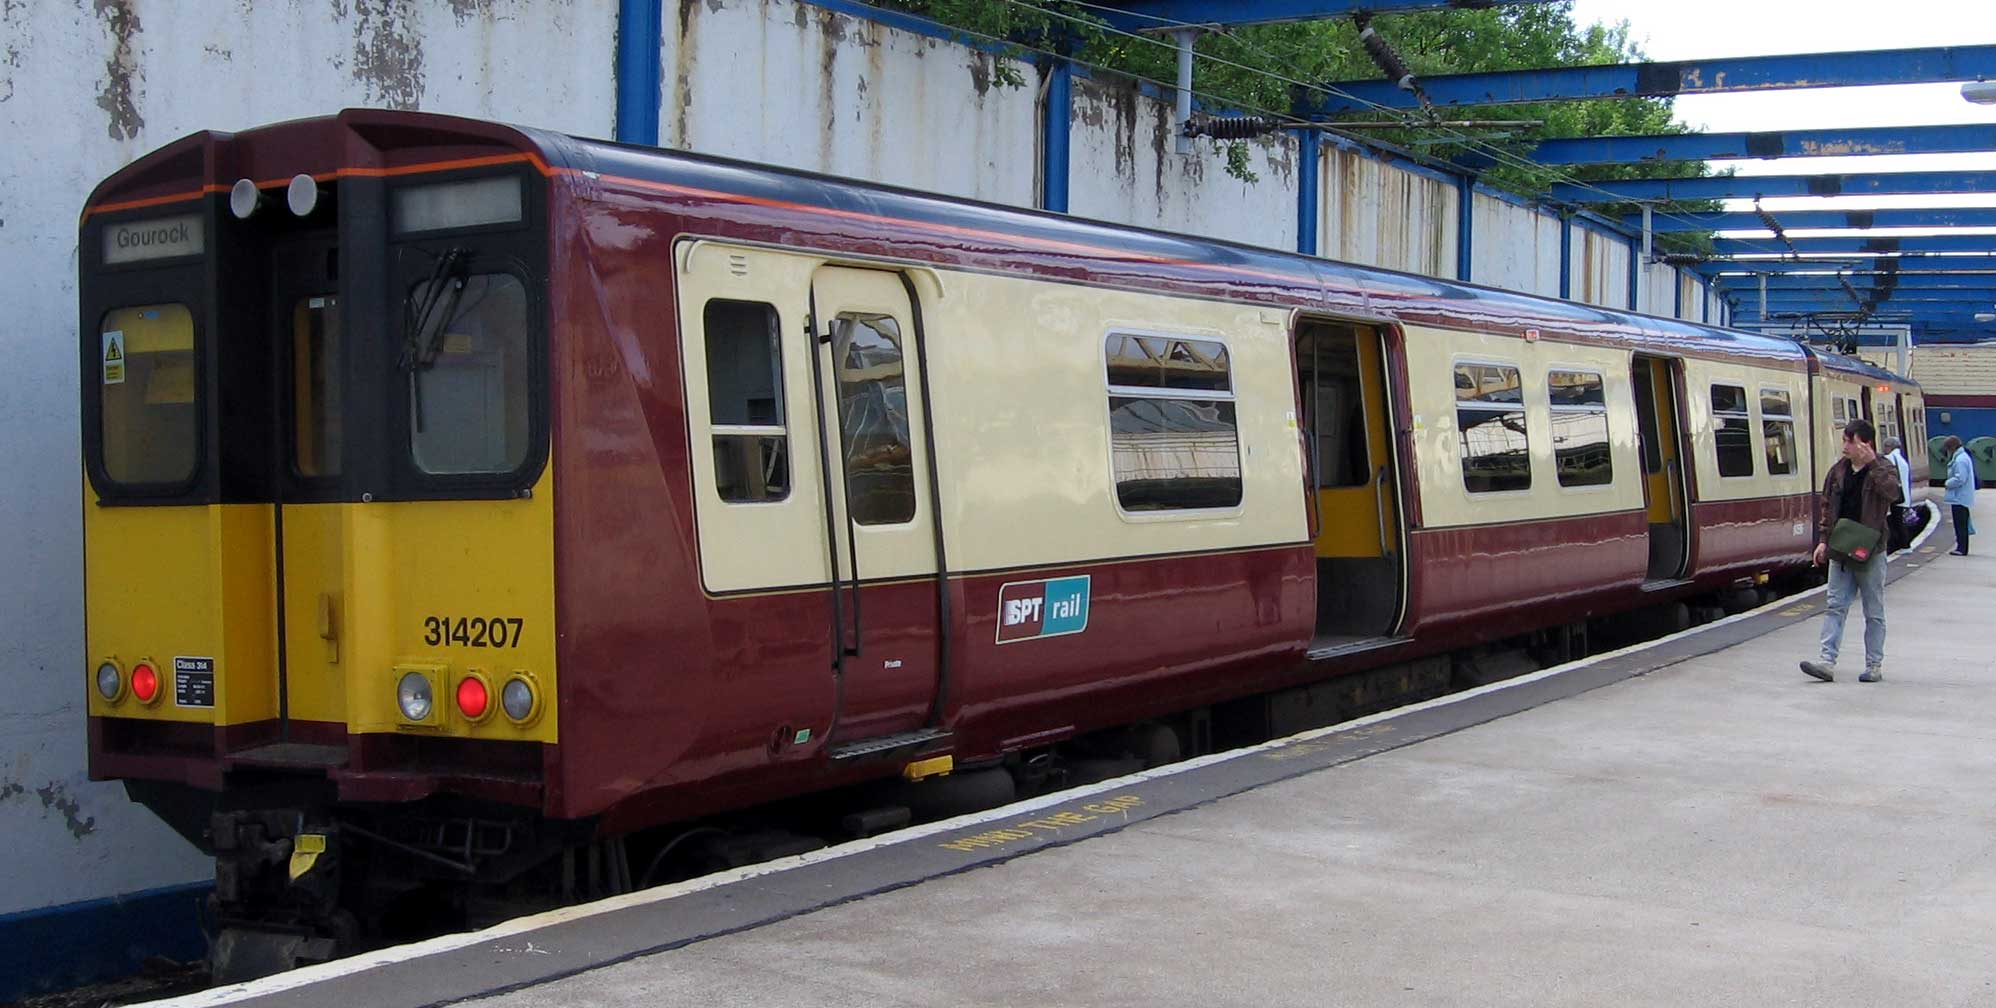 File:British Rail Class 314.jpg - Wikipedia, the free encyclopedia